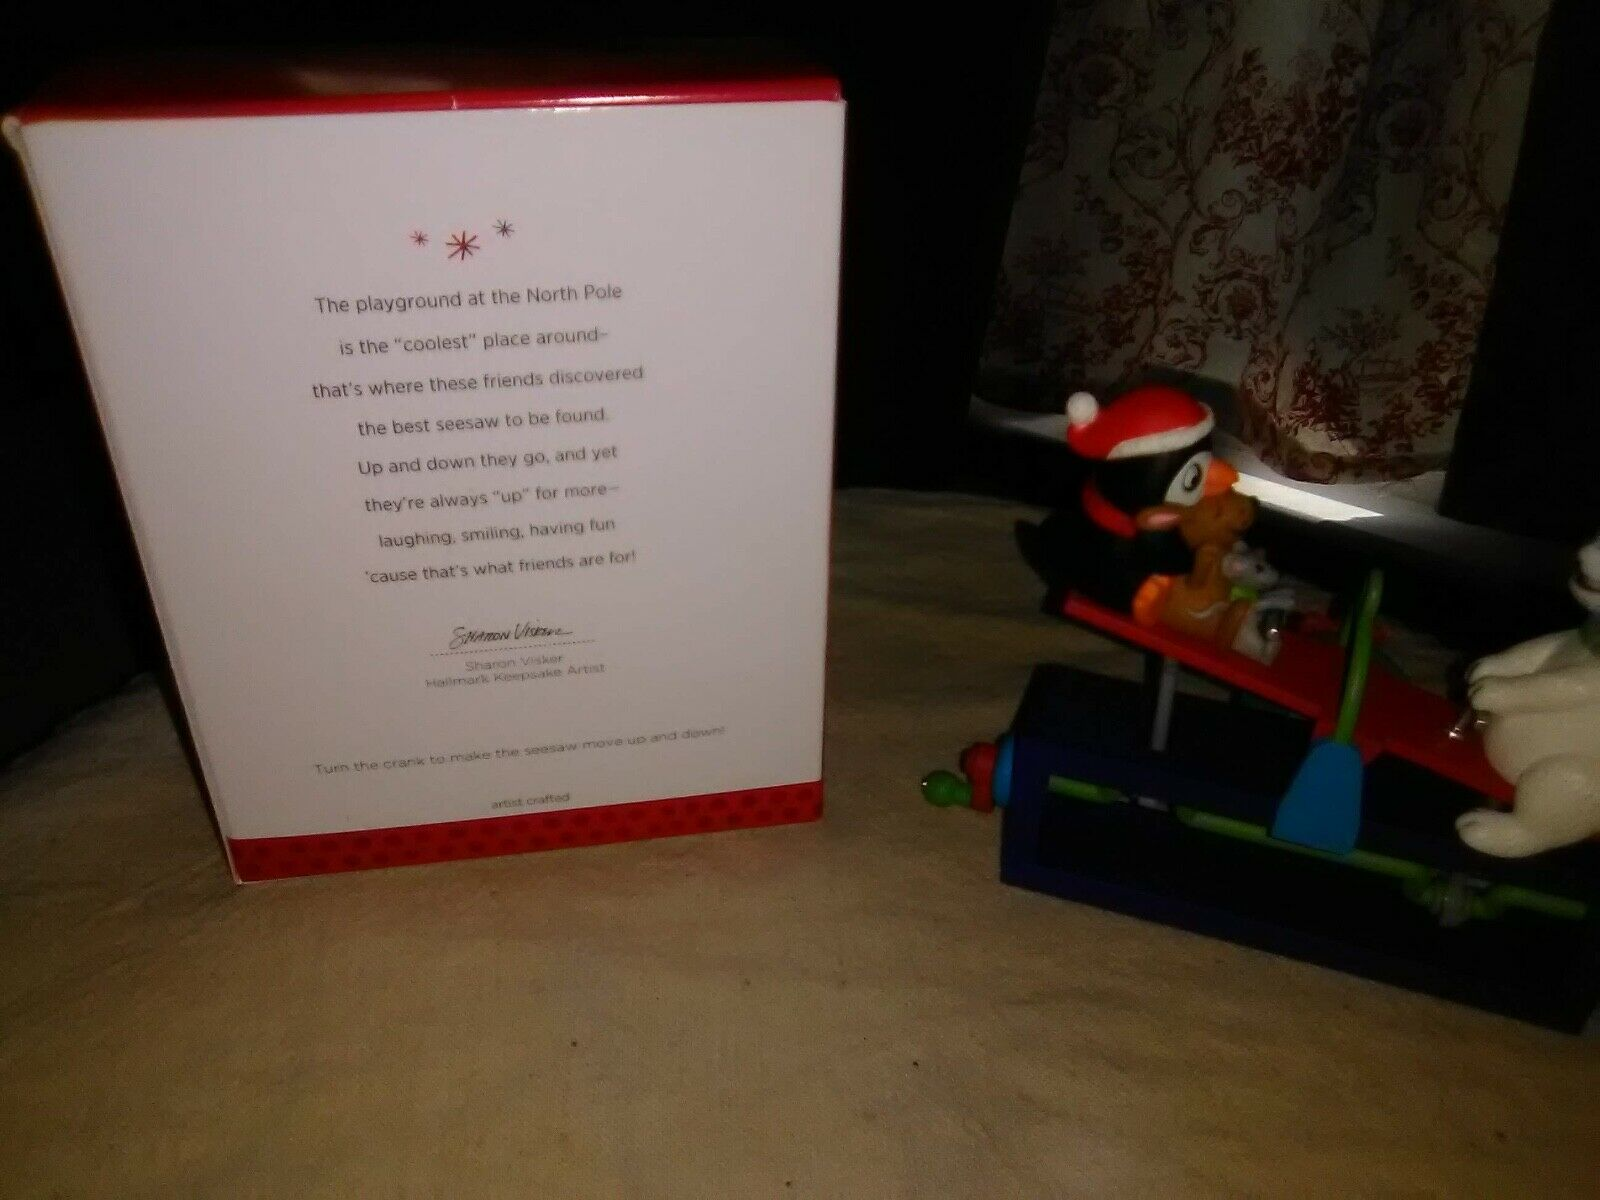 NIB 2013 HALLMARK ORNAMENT UP FOR FUN TURN CRANK TO SEE SEESAW GO UP /& DOWN NEW